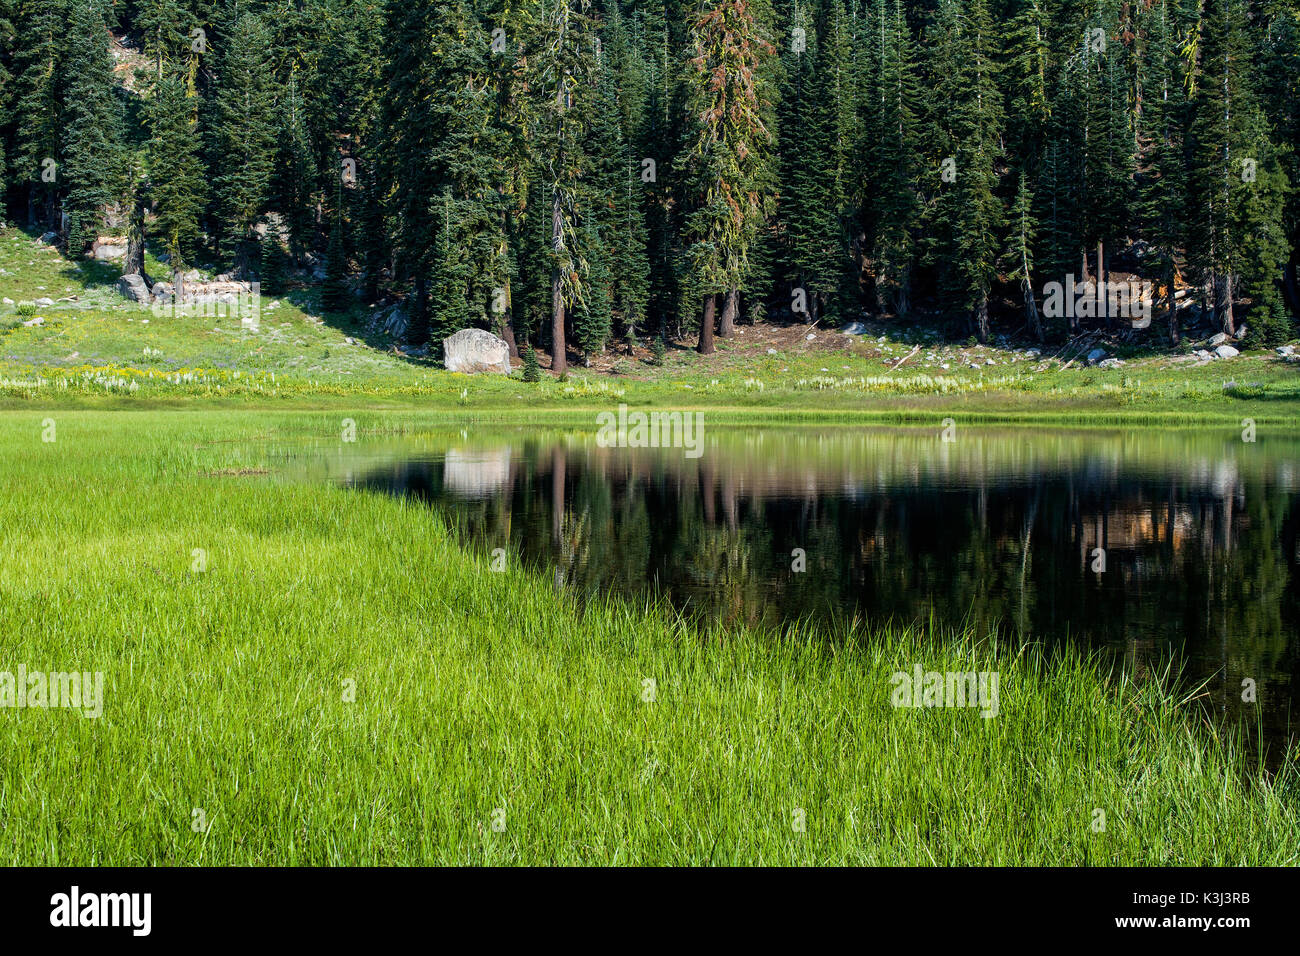 Panoramic view of Cold Boiling Lake at Lassen Volcanic National Park, California, USA, where cold gases bubble up the water - Stock Image